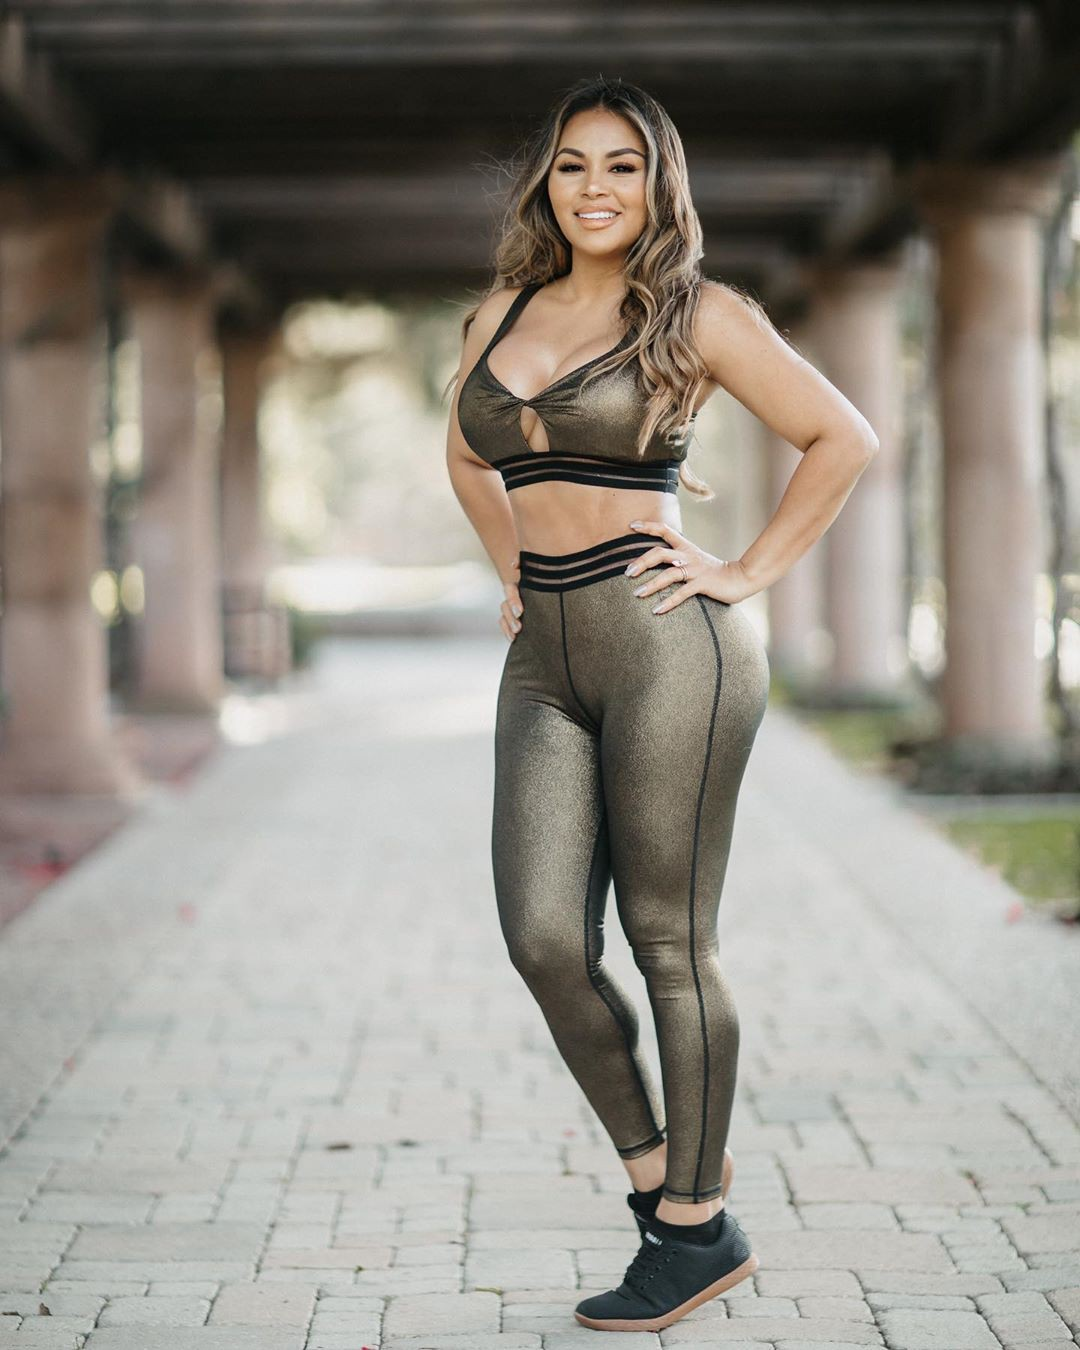 Dolly Castro lingerie colour outfit, photoshoot poses, photography ideas